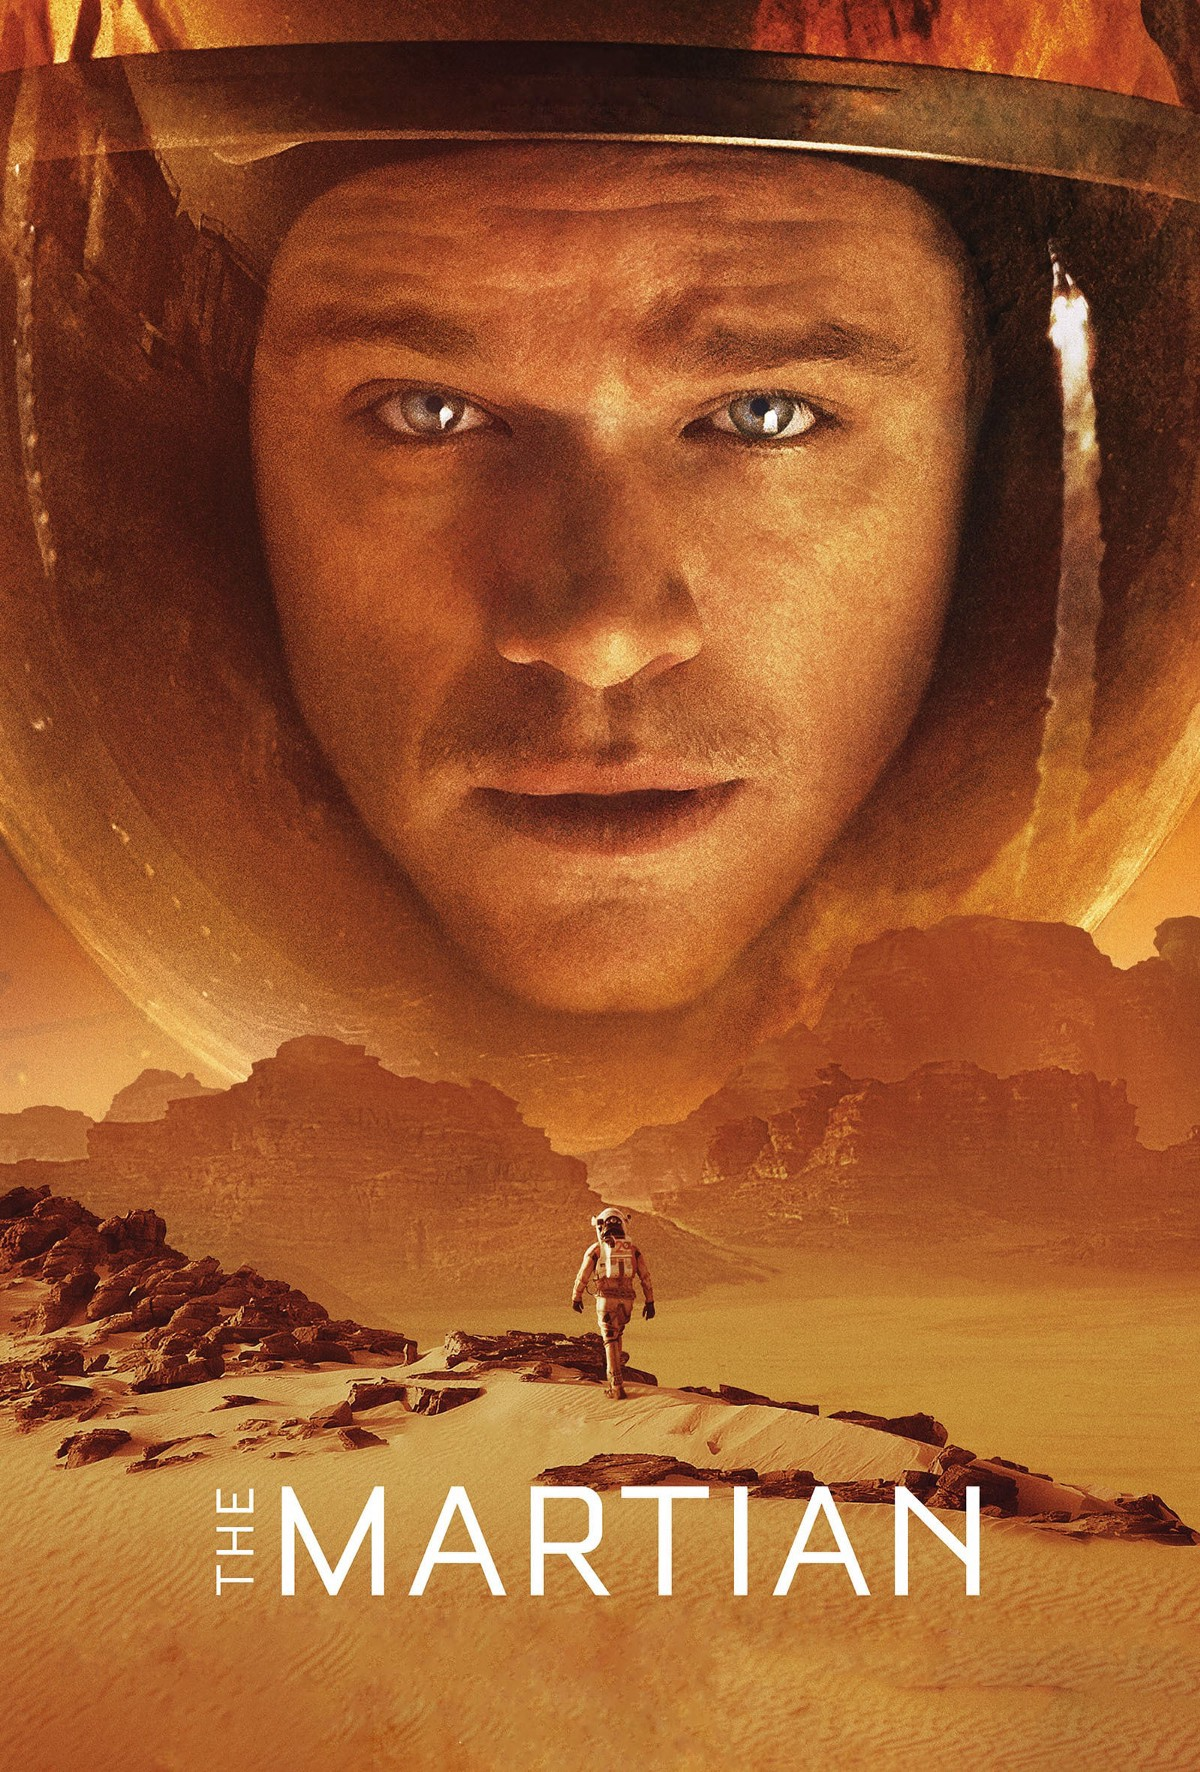 the martian full movie online free stream